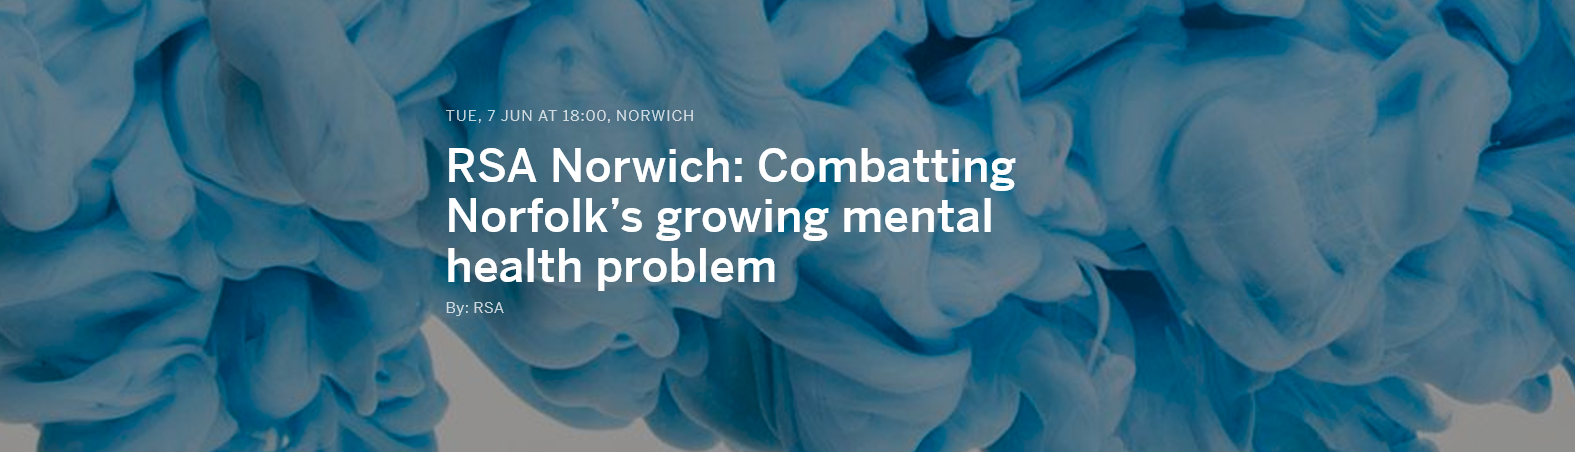 RSA Norwich Combatting Norfolk's growing mental health problem